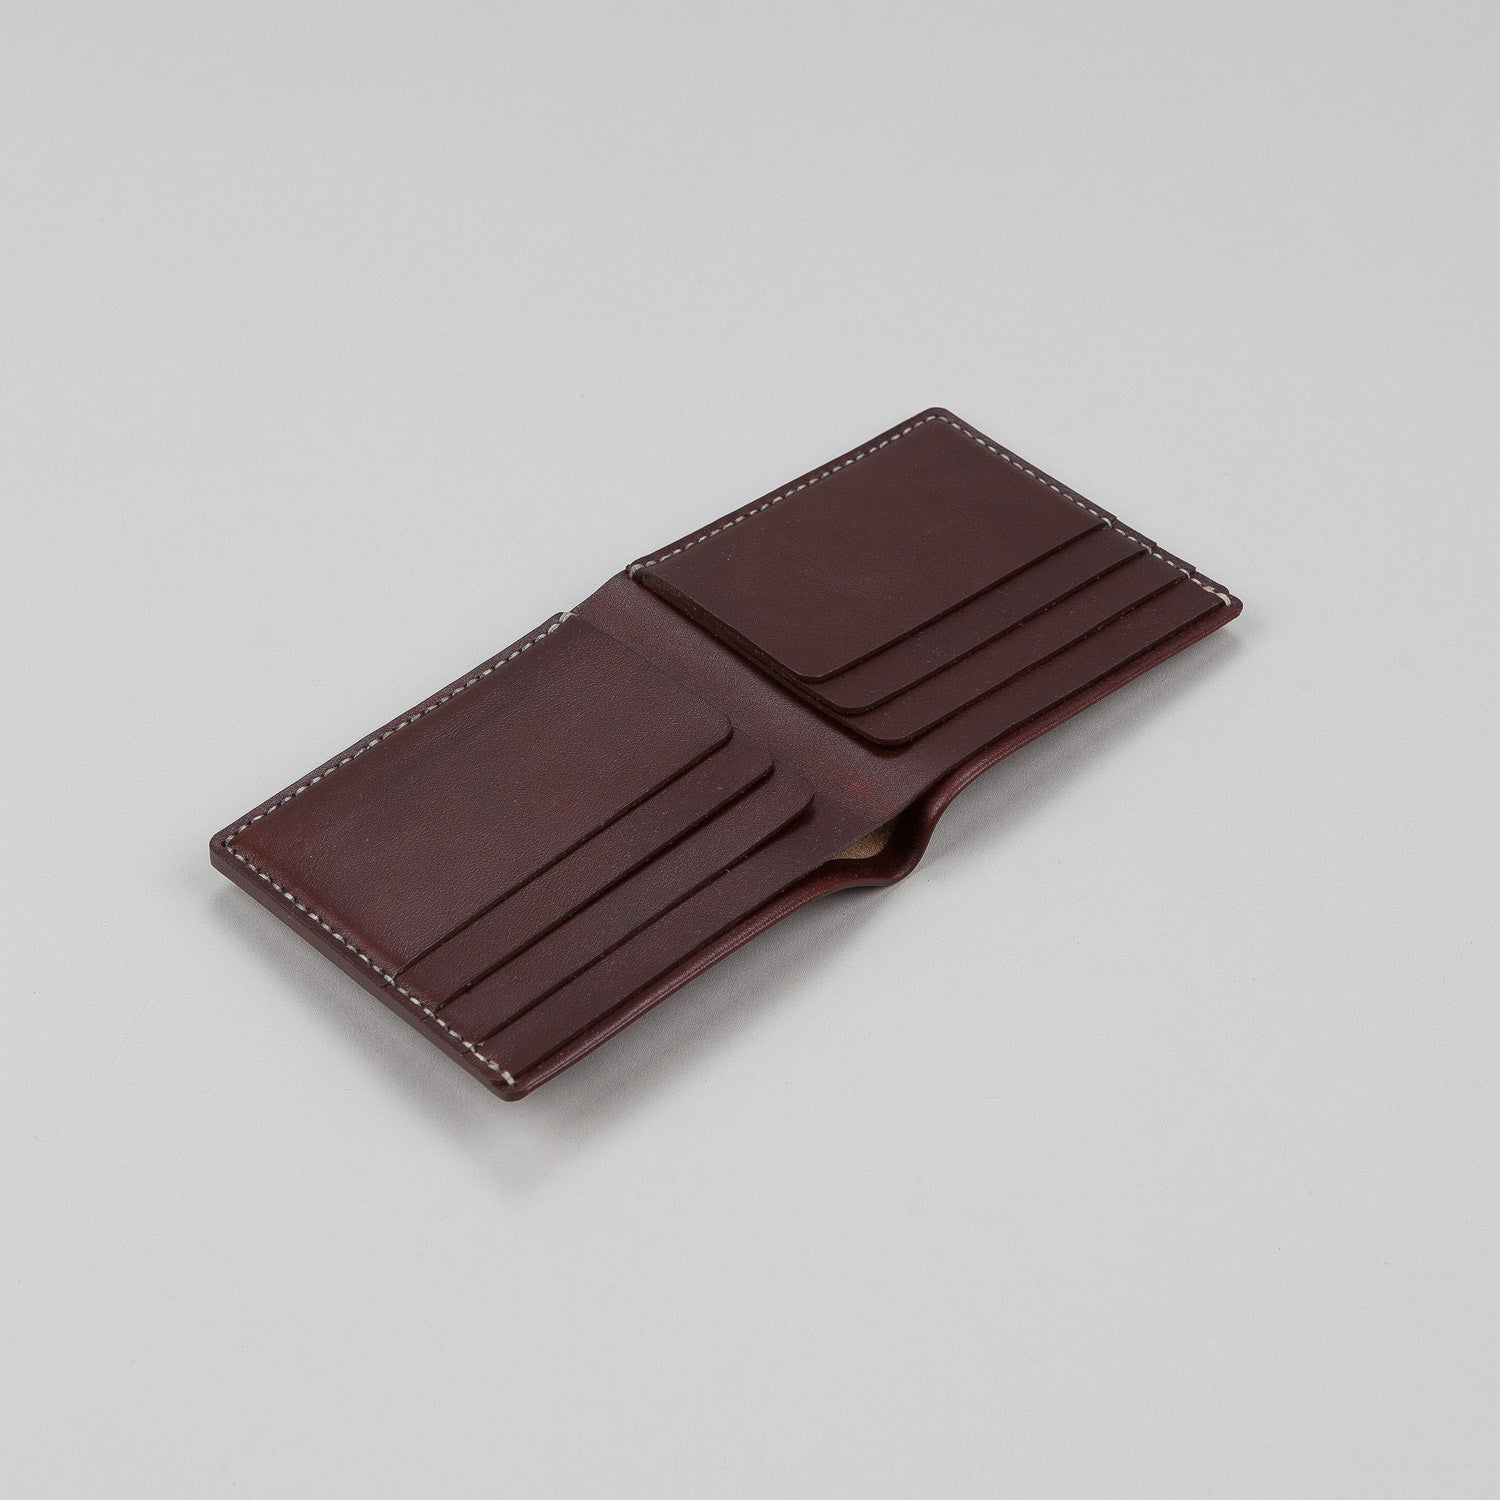 Makr Open Billfold Leather Wallet - Oxblood